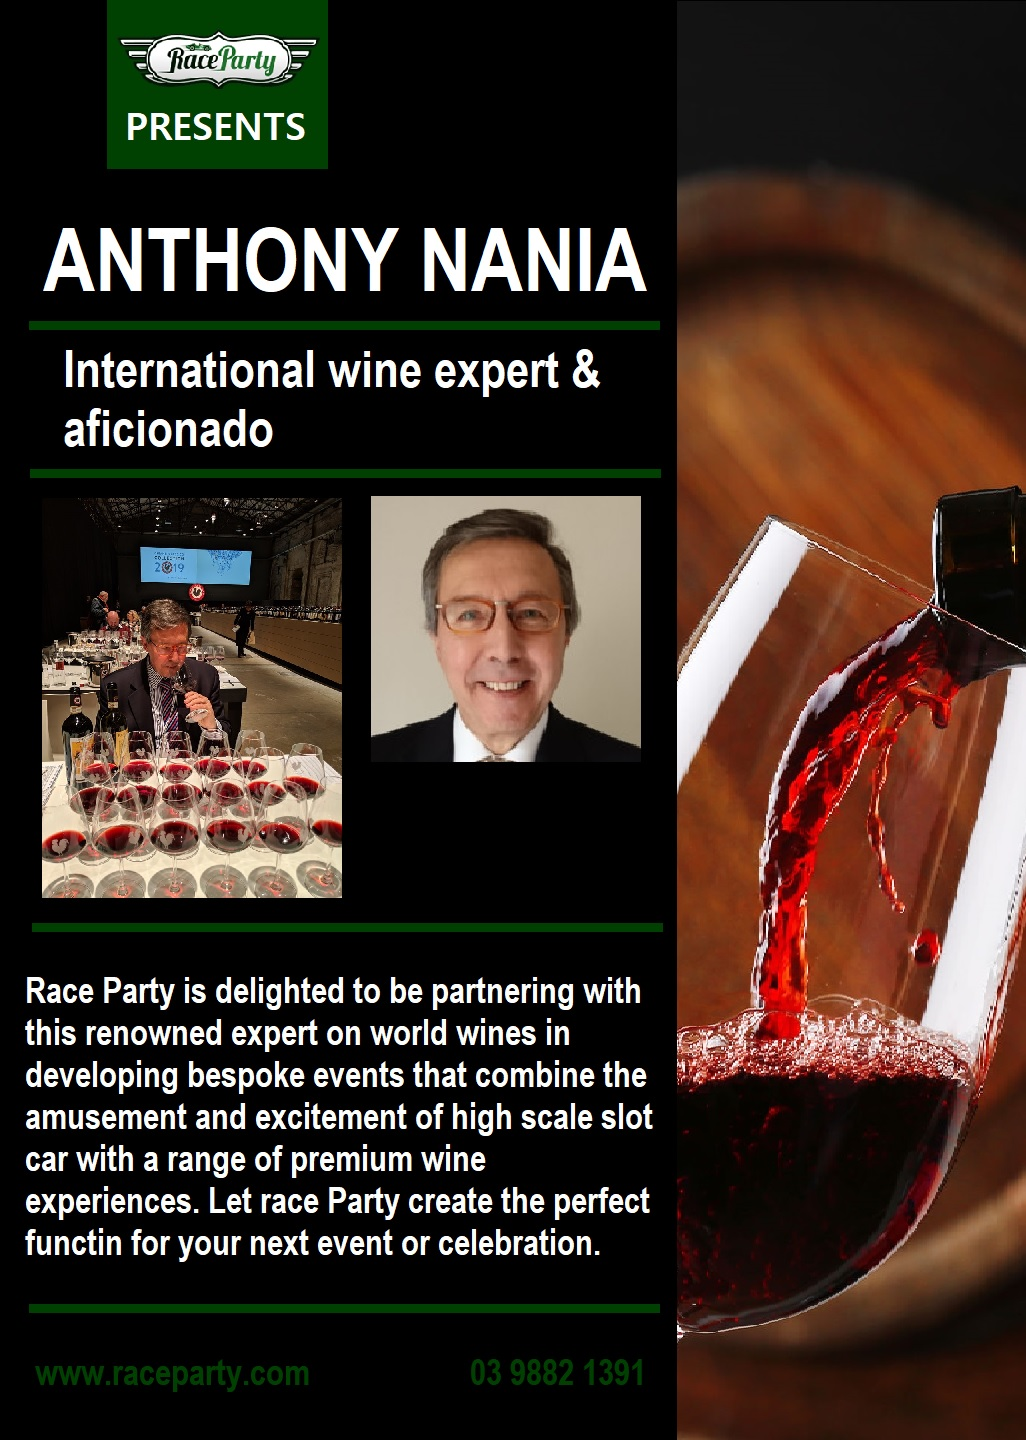 anthony nania flyer.jpg